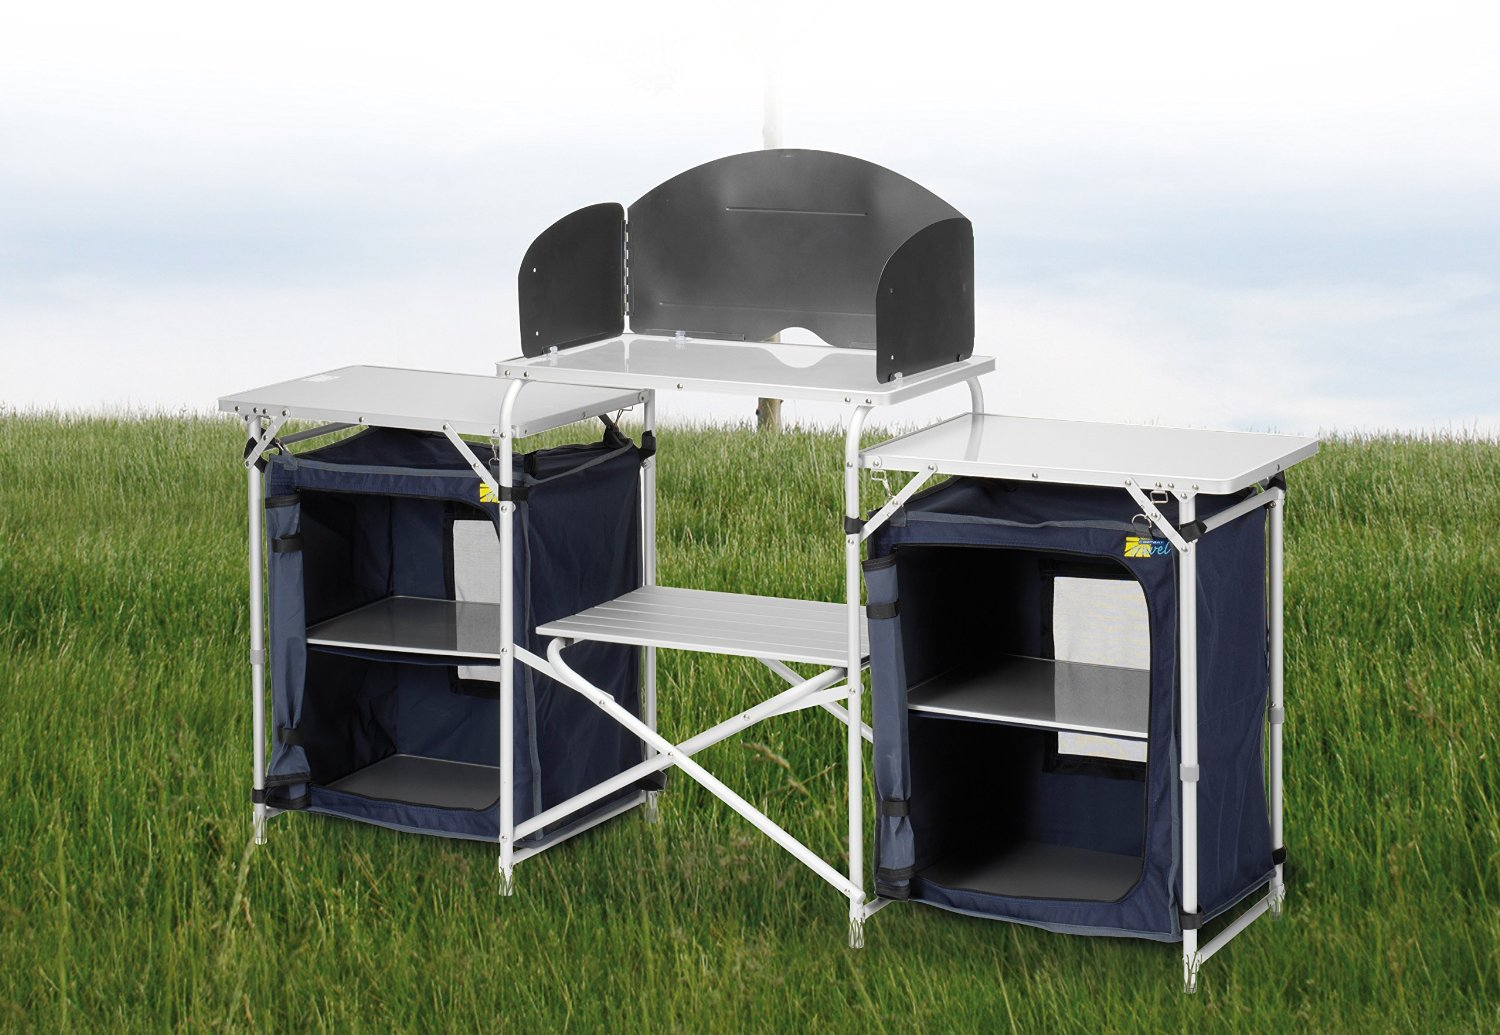 Muebles lulukabaraka obtenga ideas dise o de muebles for Mesa camping carrefour